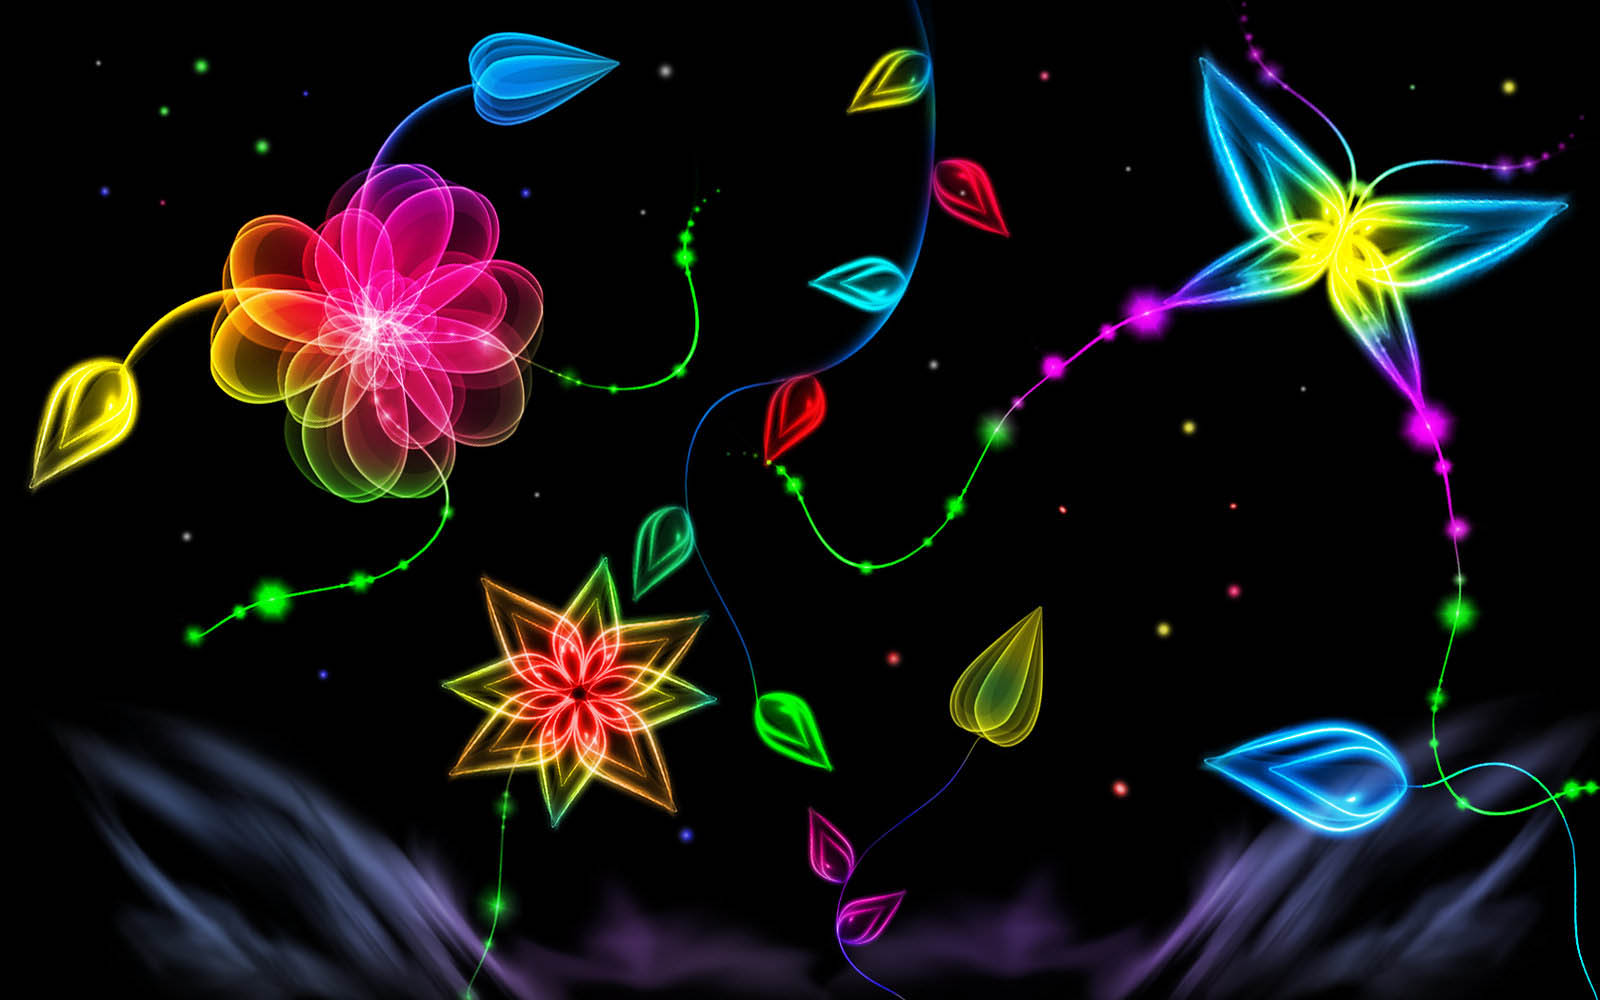 Tag Neon Art Wallpapers Backgrounds PhotosImages and Pictures for 1600x1000